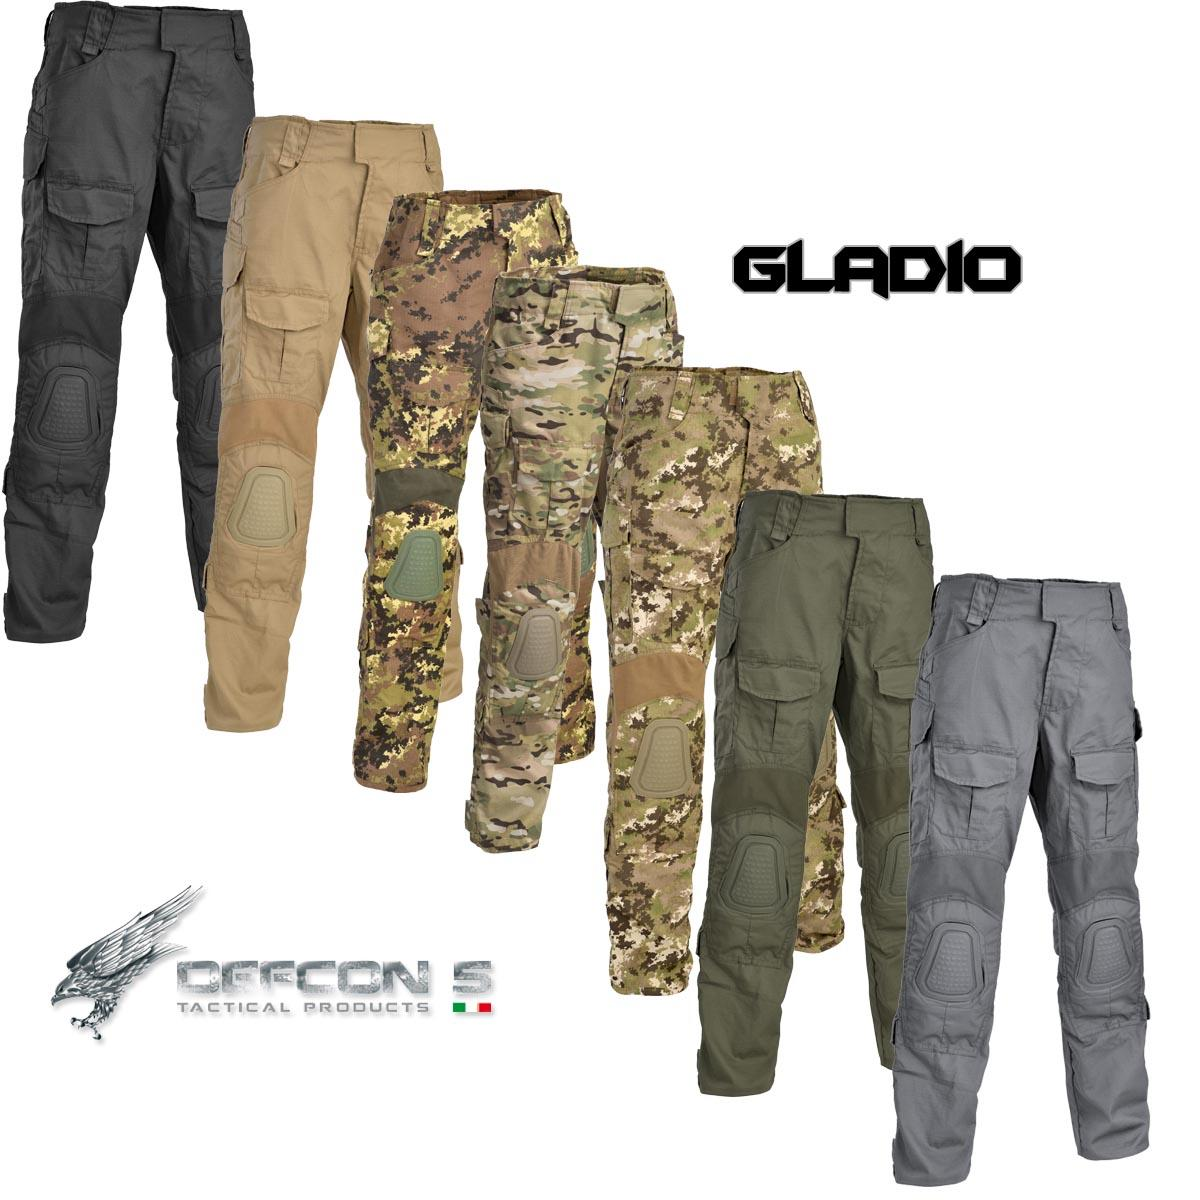 Tactical Pants Gladio With Plastic Knee Pads